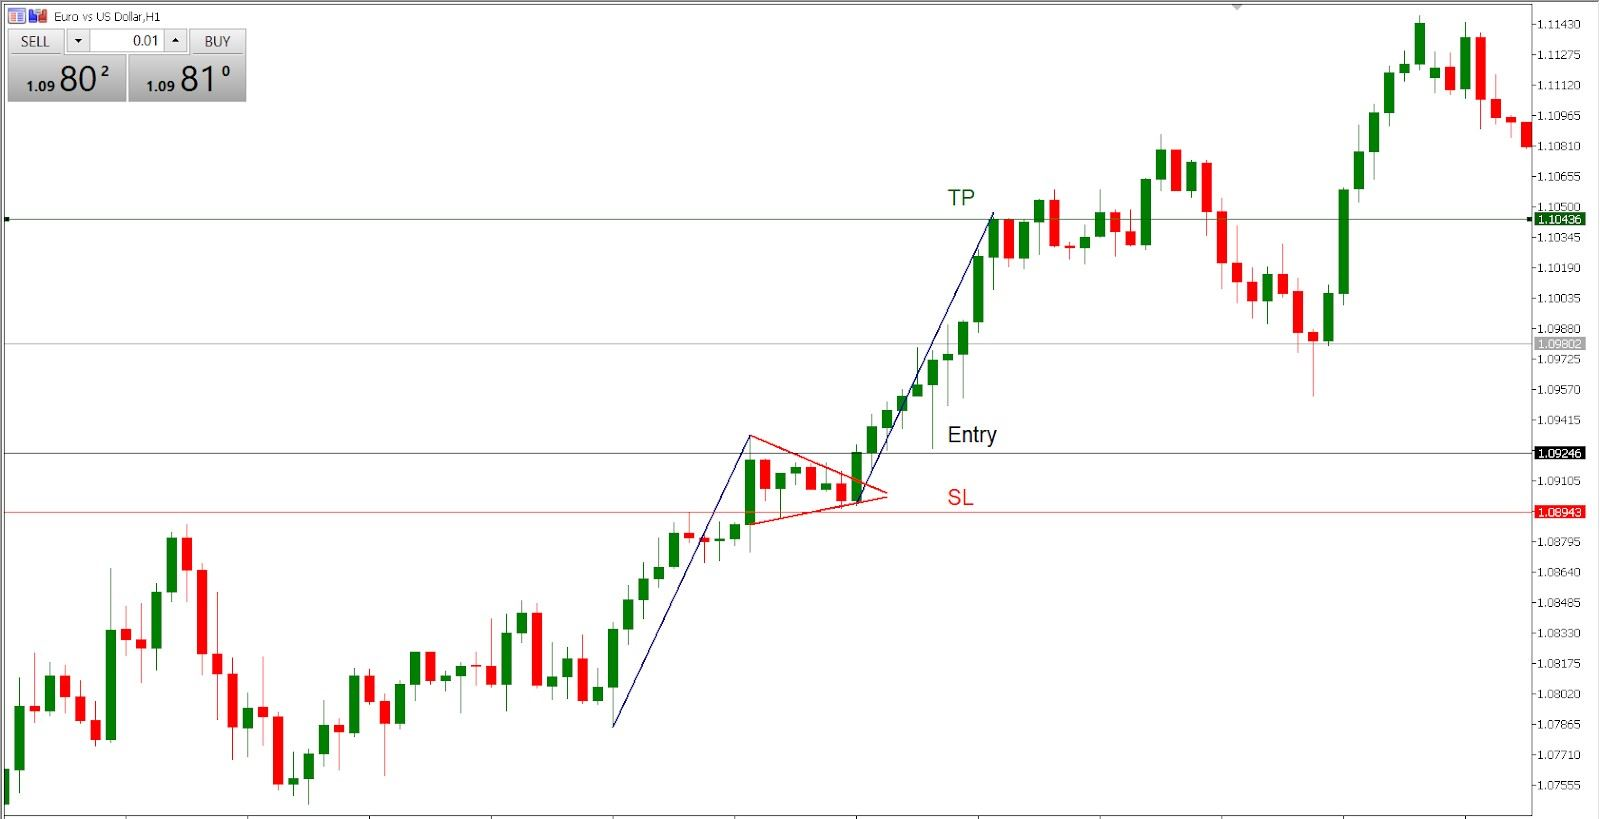 trading the bull pennant pattern